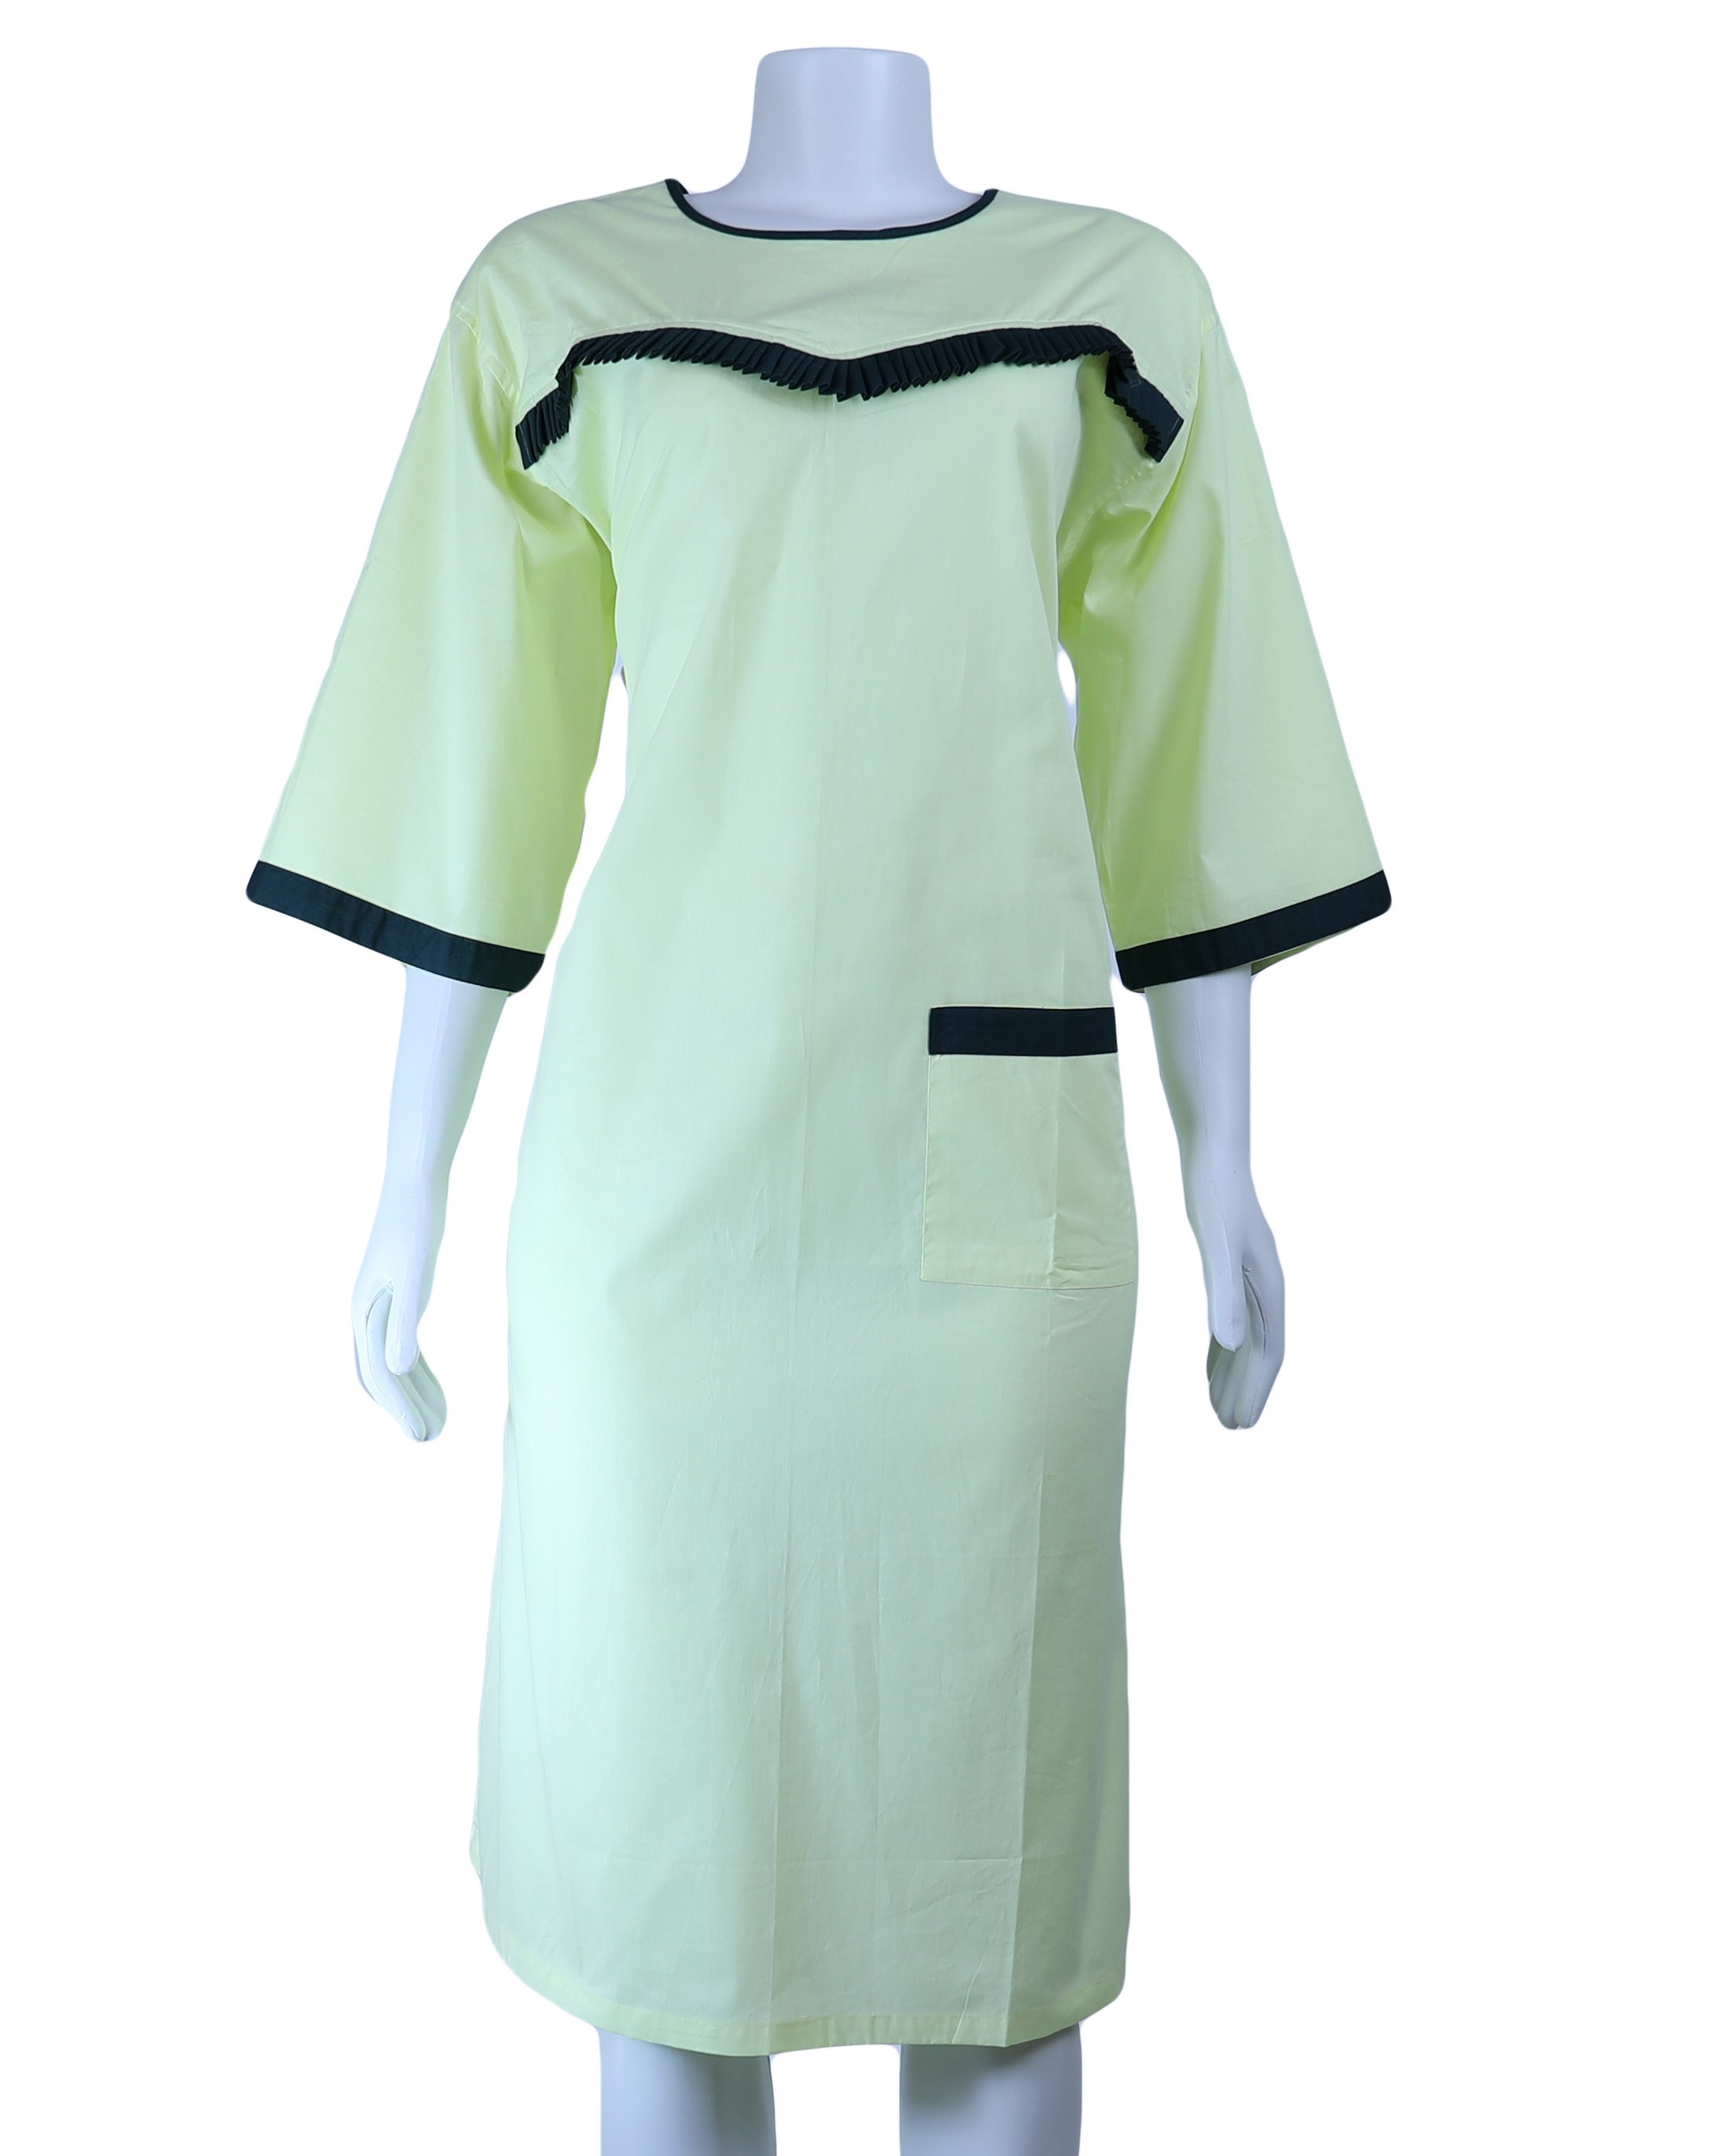 PatientGown-SS20